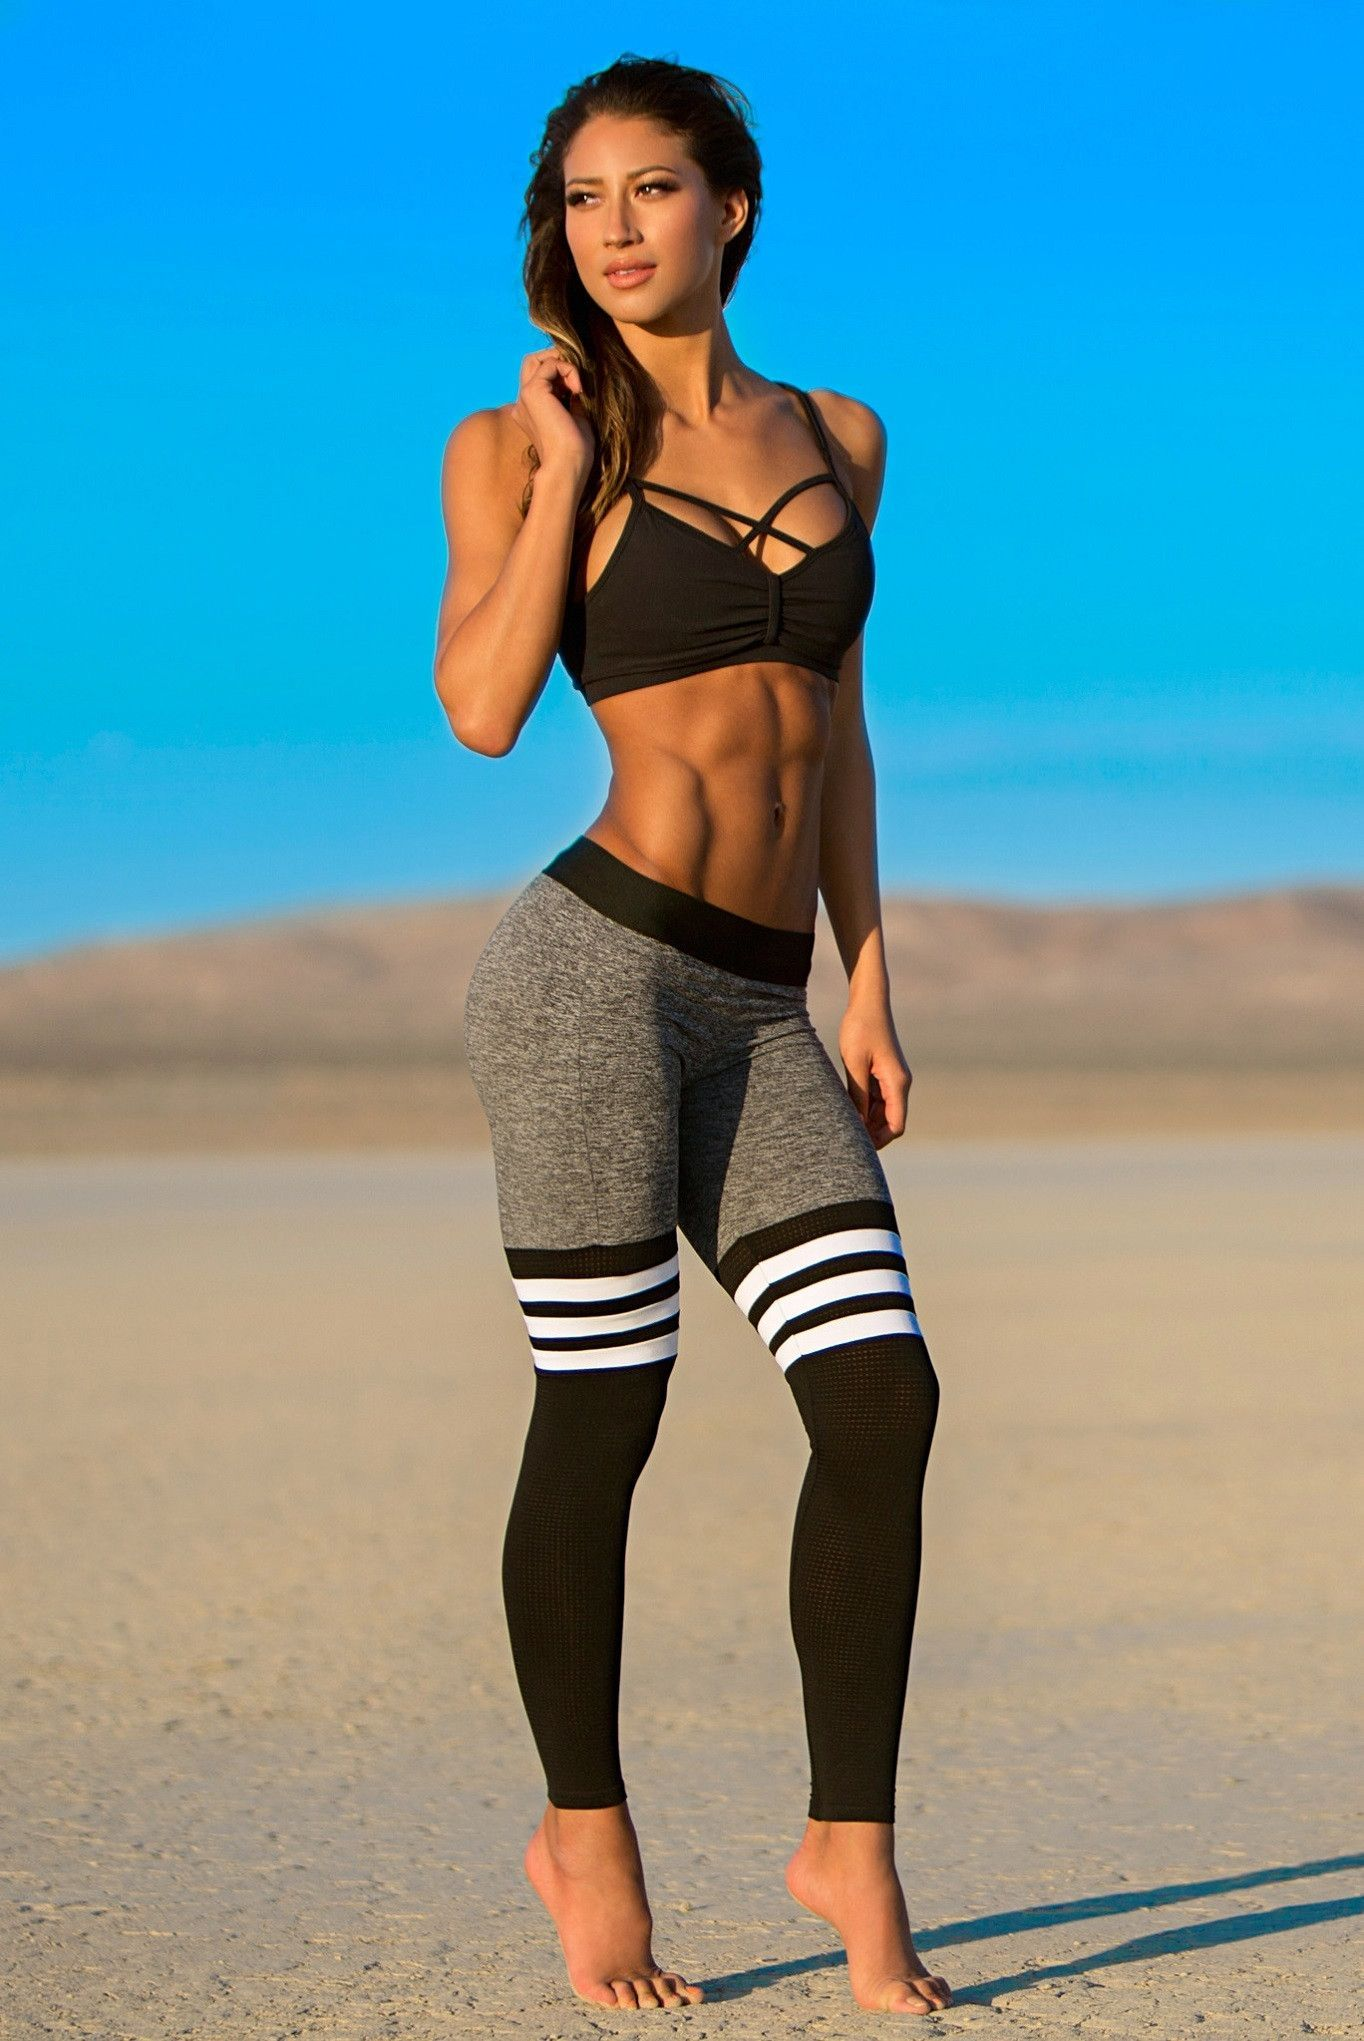 99d11b8d1add50 Why workout in boring old gym clothes when you can workout in these stylish Bombshell  Leggings. These leggings will make you want to be more active than ...